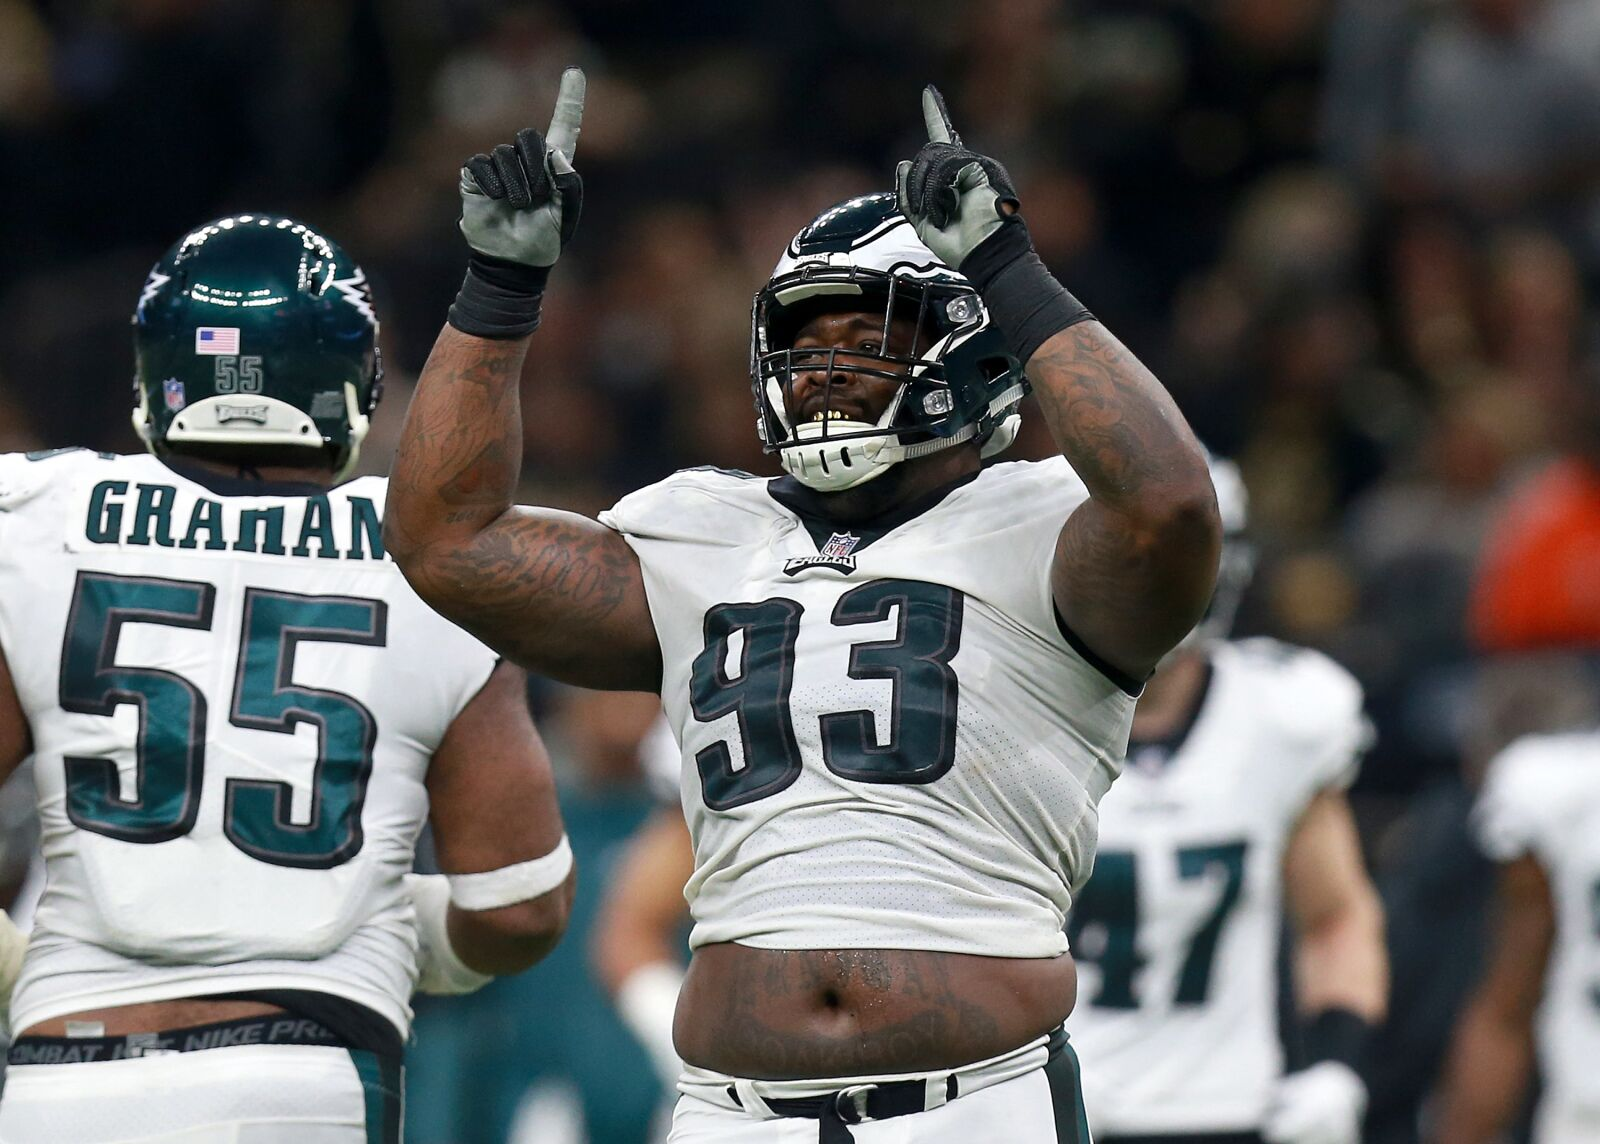 newest 5b88a a3b37 Philadelphia Eagles: Timmy Jernigan could play himself right ...